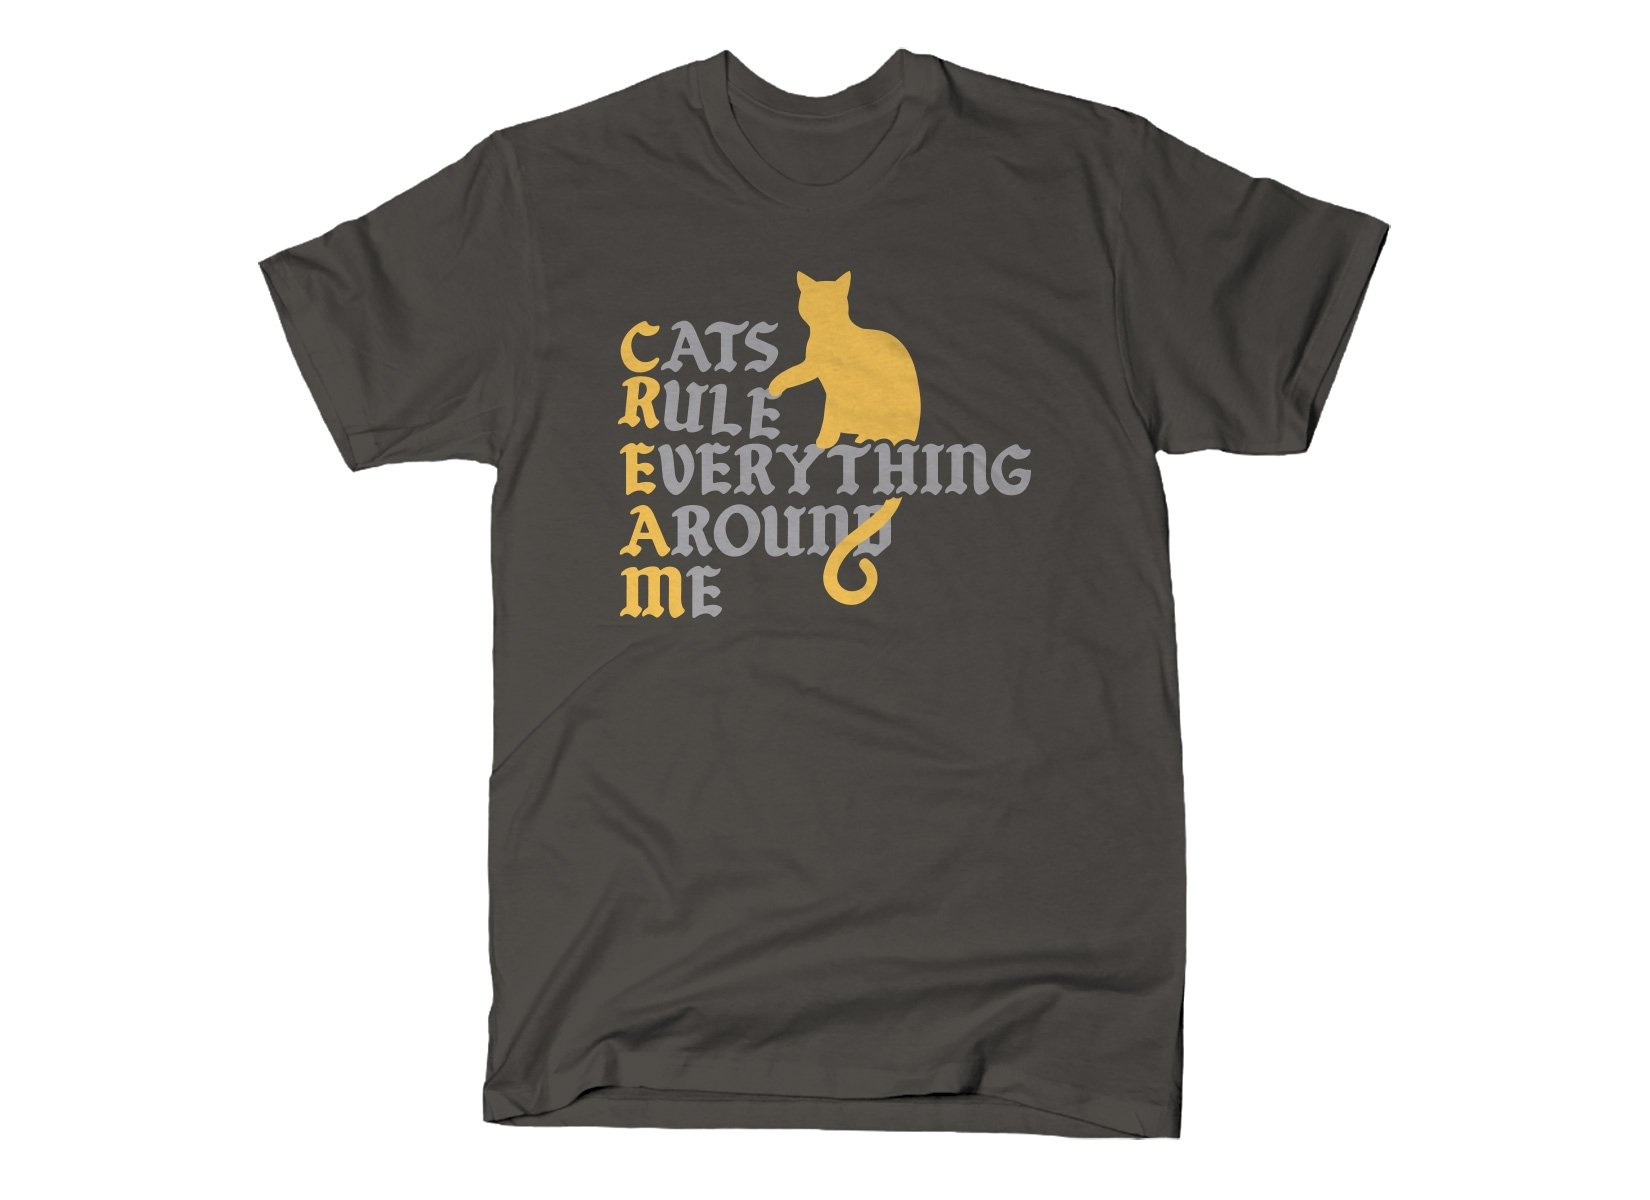 Cats Rule Everything Around Me on Mens T-Shirt